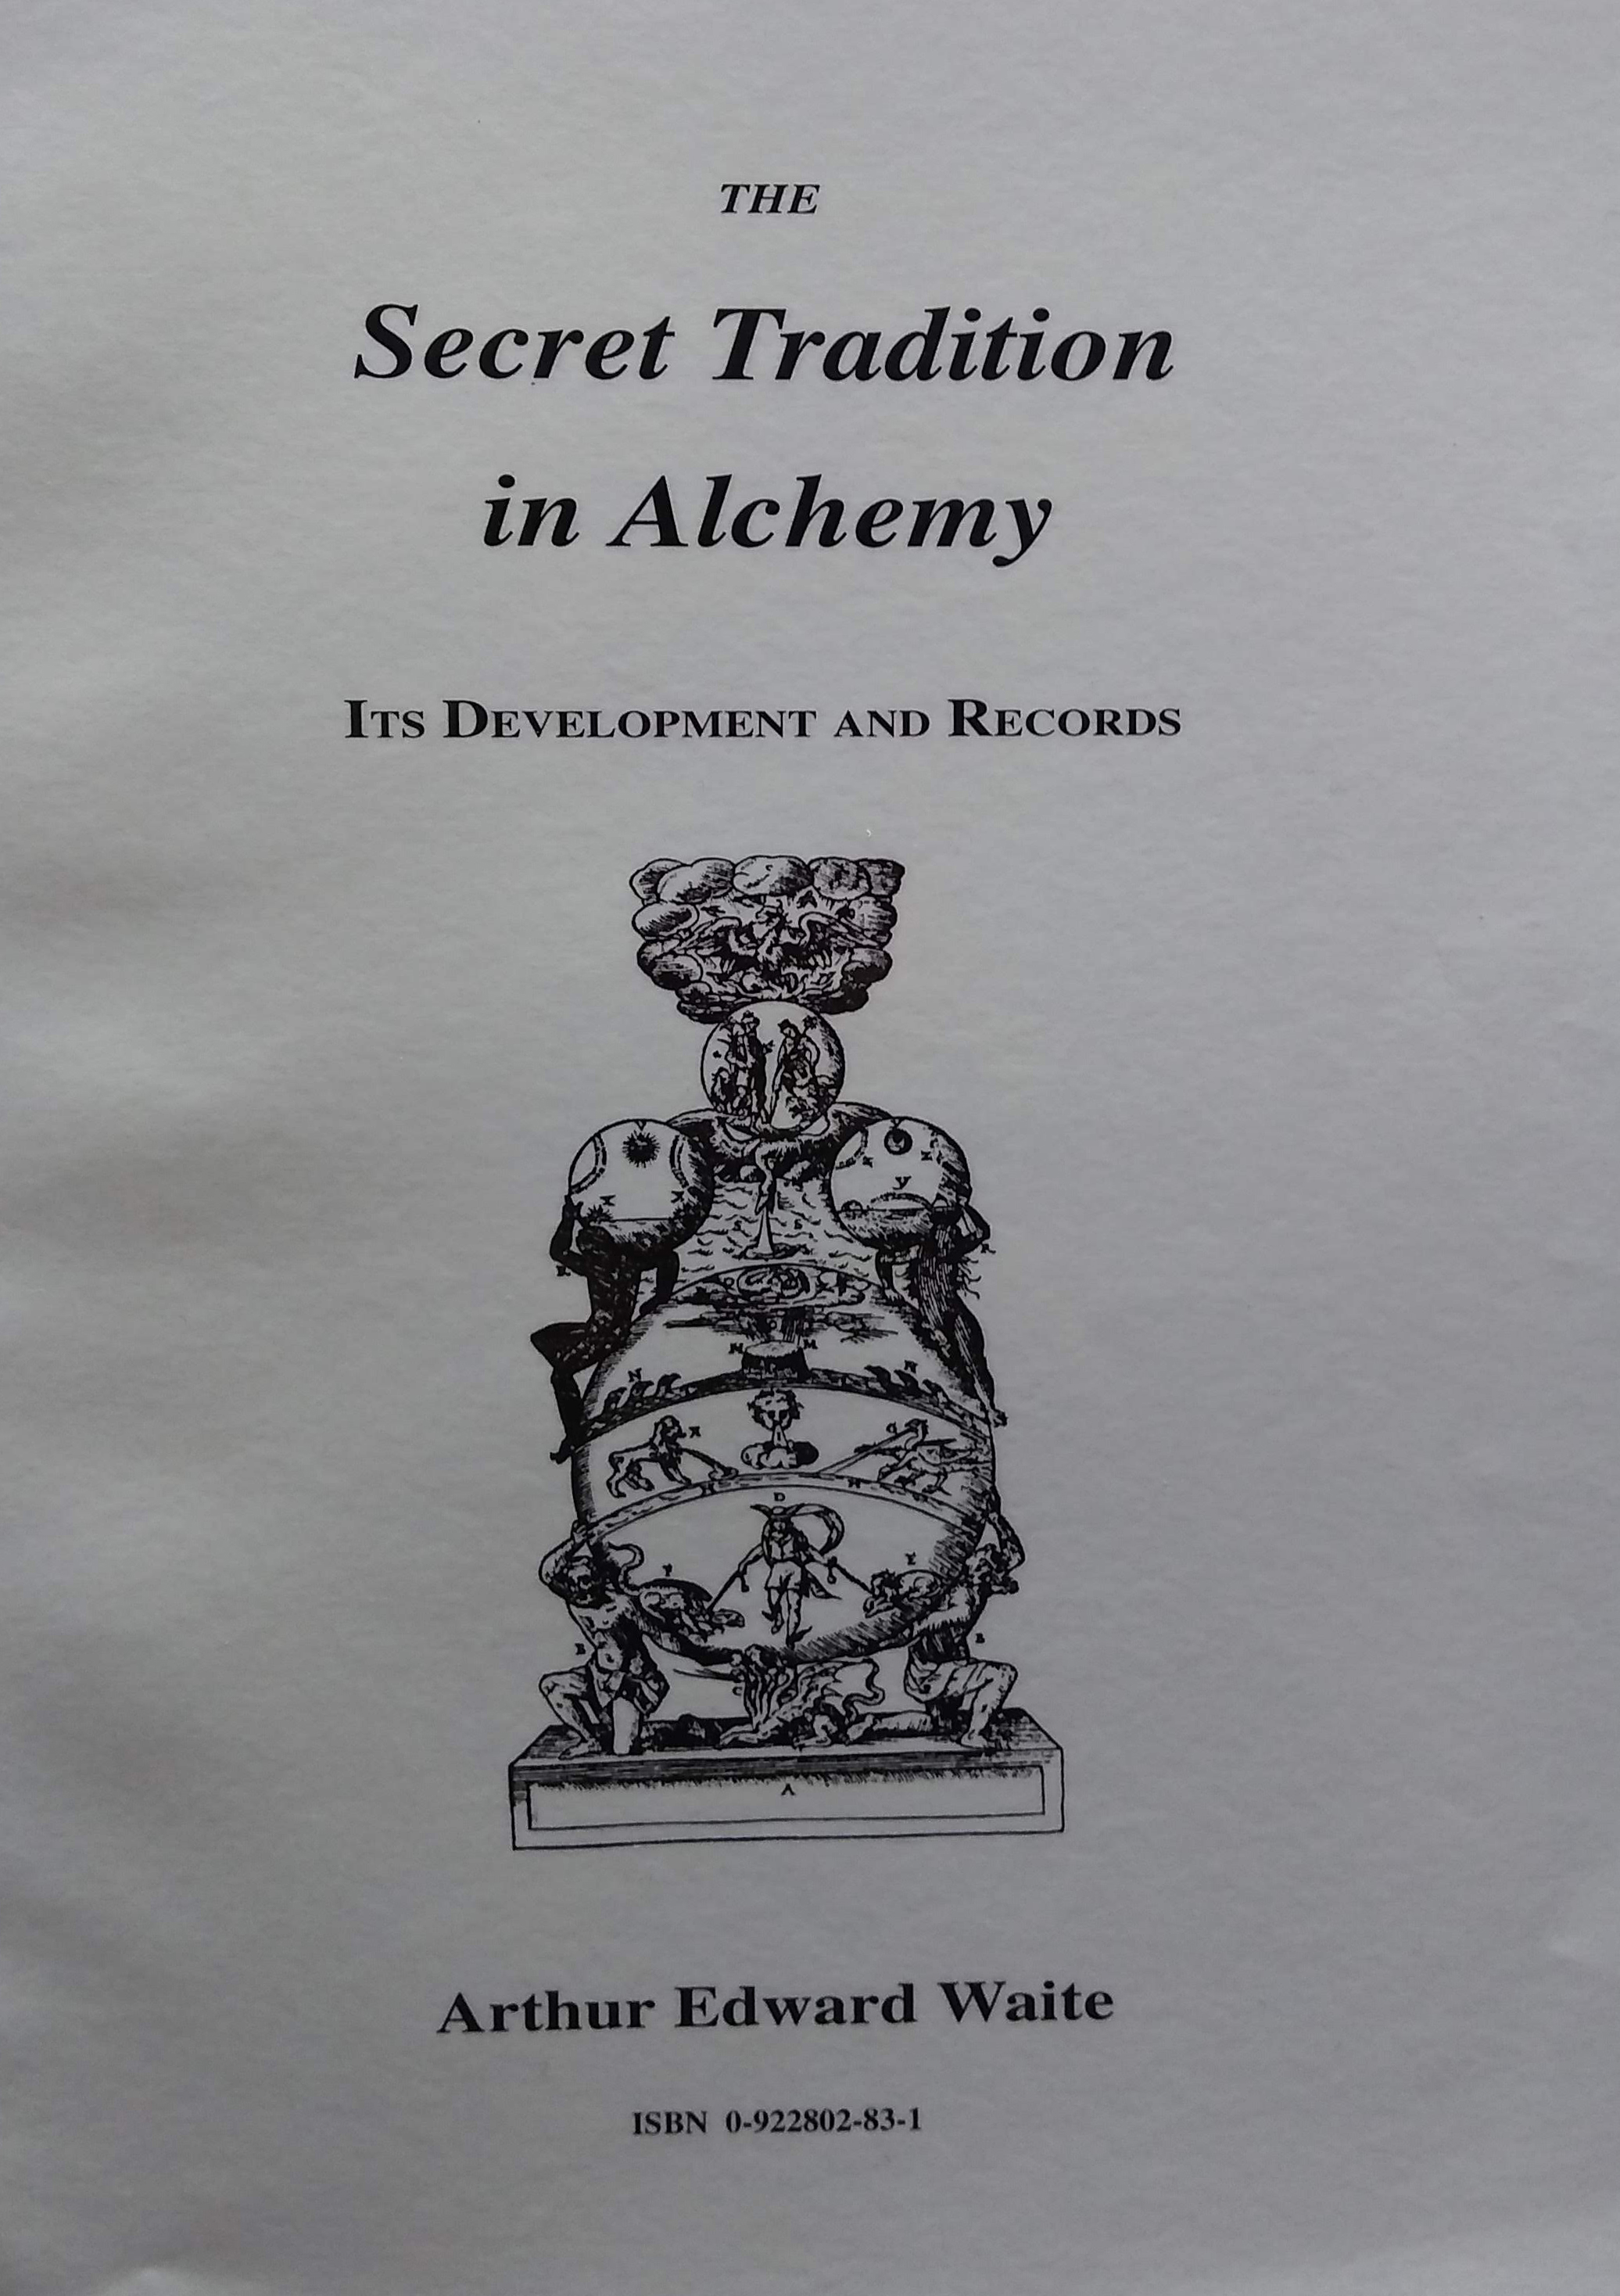 The Secret Tradition in Alchemy